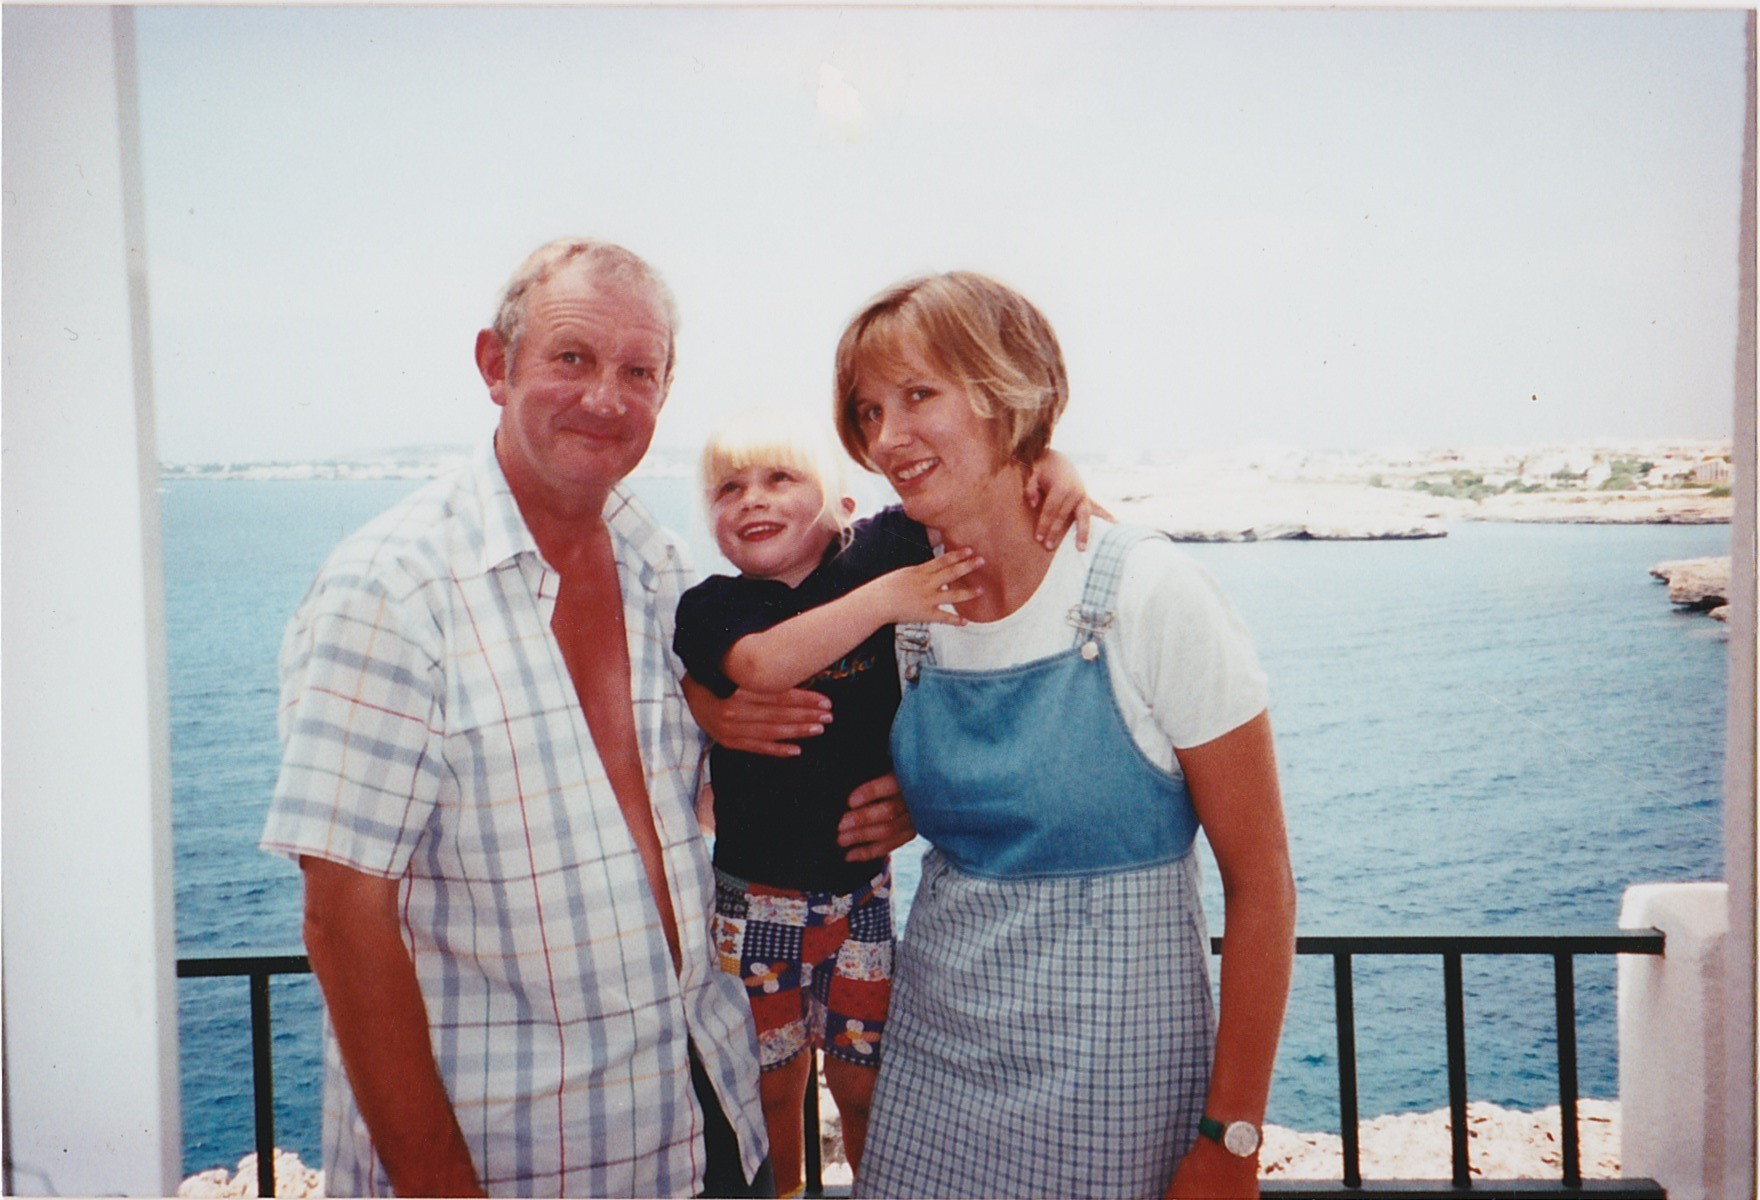 Bruce Teale who died from pancreatic cancer in 2004 with his daughter Rachel and granddaughter Sarah